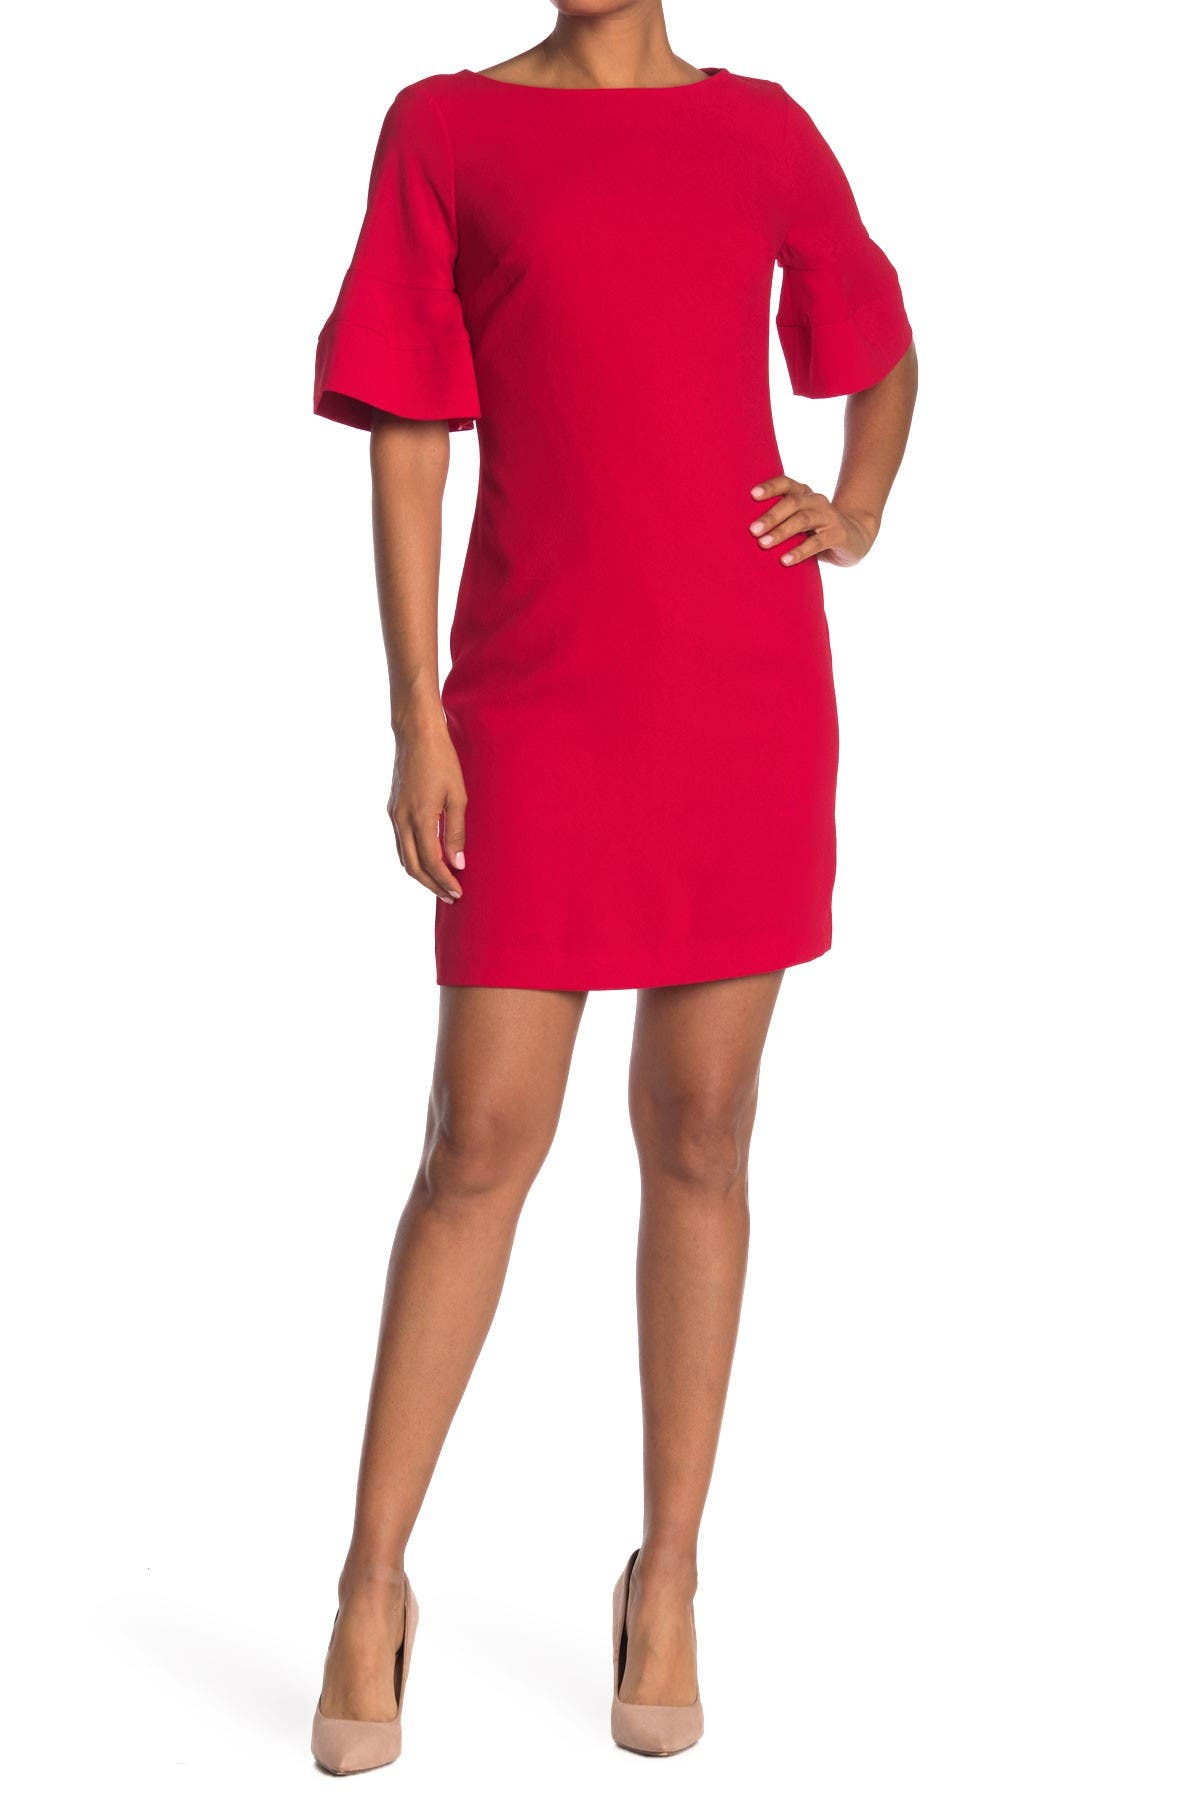 Image of Trina Turk Sojourn Bell Sleeve Sheath Dress